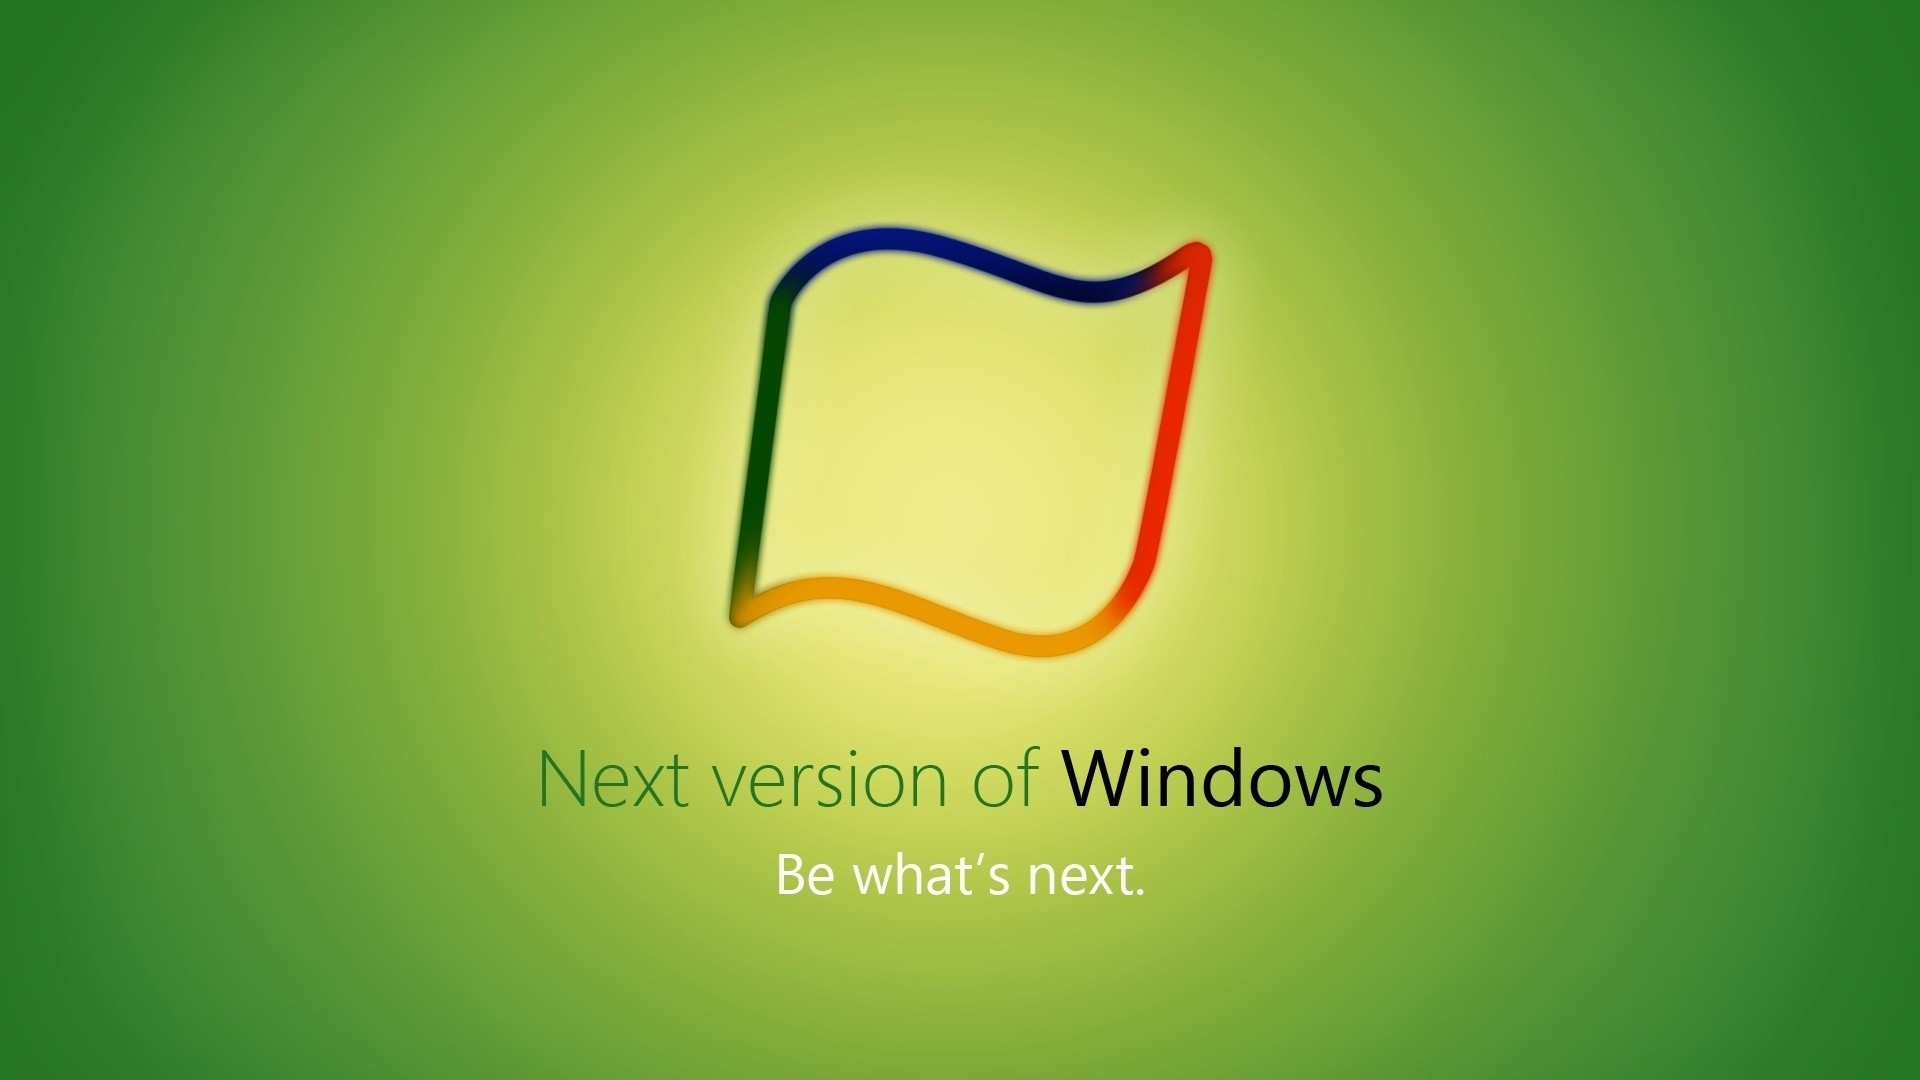 Wallpaper windows, green, text, white, yellow, red, blue